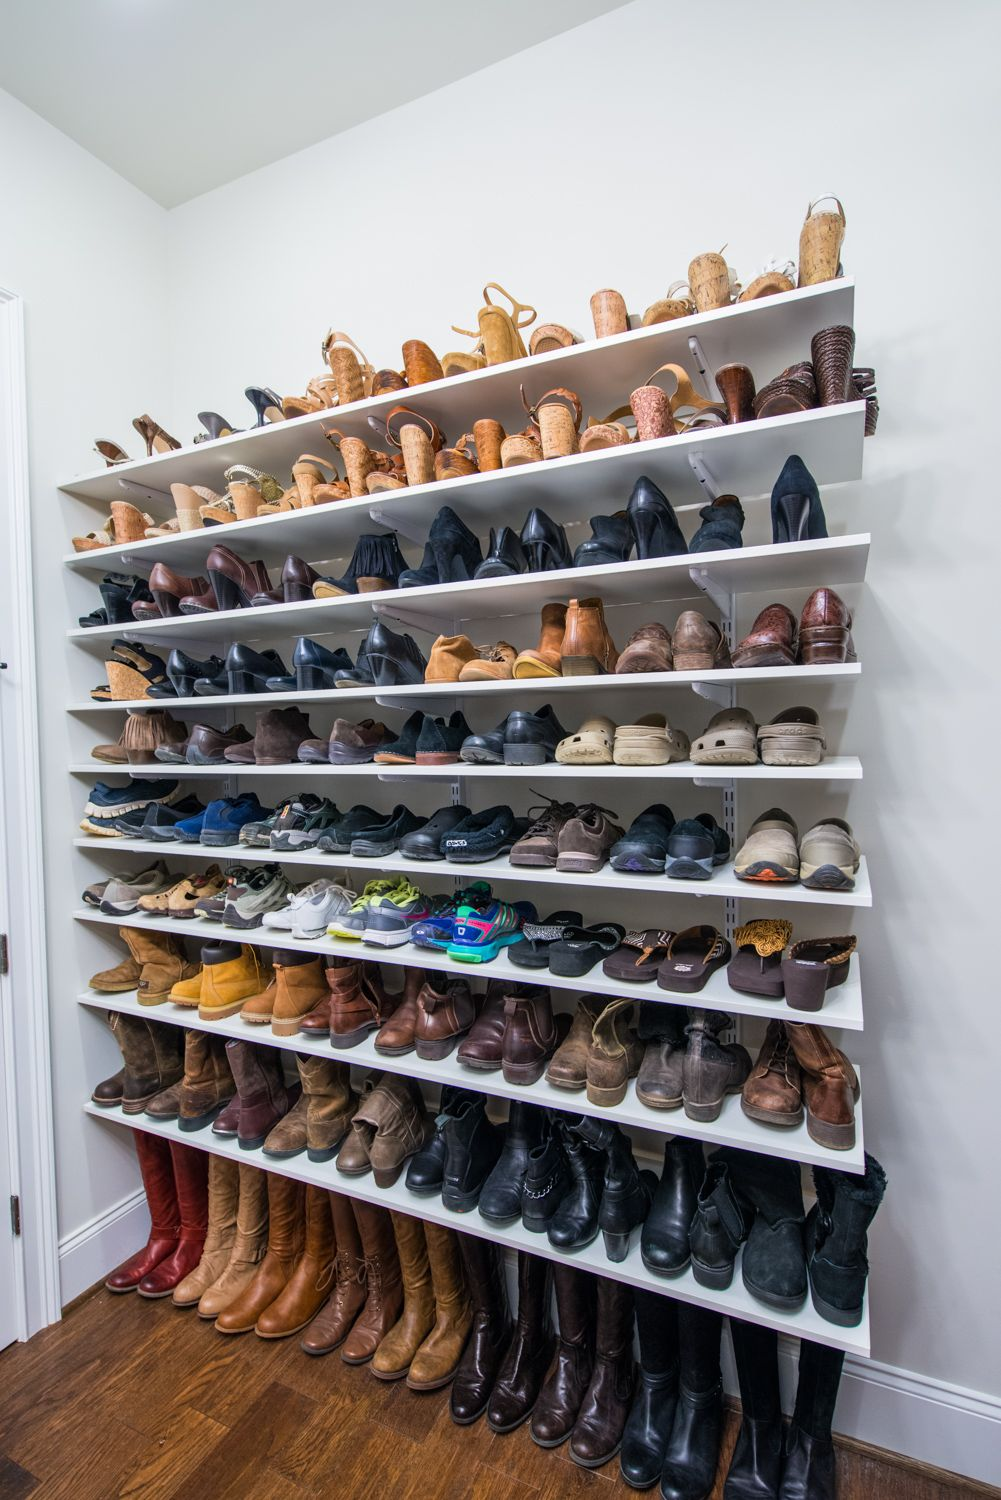 easy ways and organize your shoe collection for the home floating shelves storage keep shoes point with adjustable shelving like organized living freedomrail move seasons change